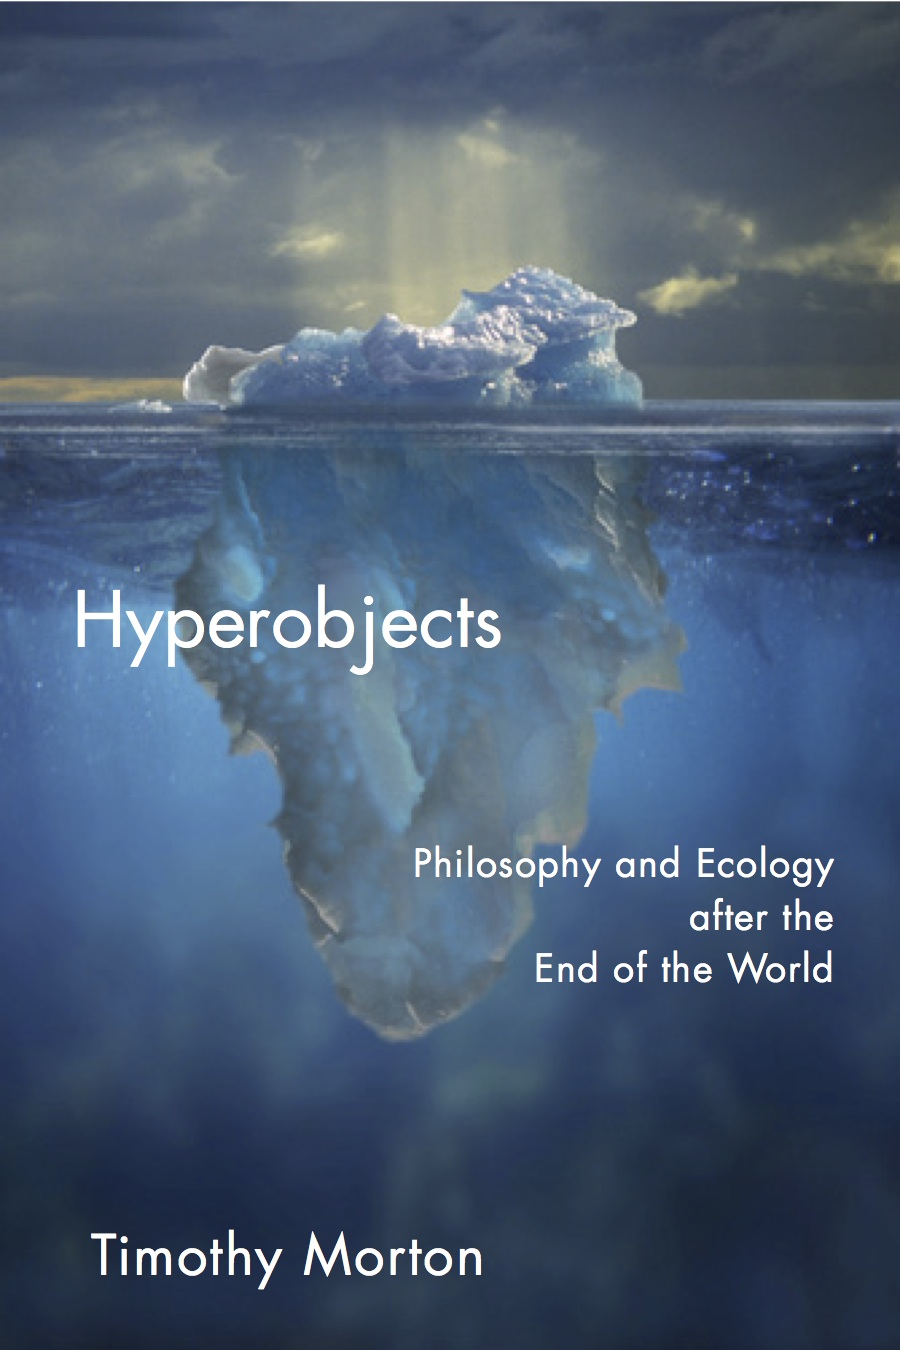 """HYPEROBJECTS    by  TIMOTHY MORTON    Global warming is the most dramatic example of what English philosopher and professor   Timothy Morton  calls """"Hyperobjects"""" --entities that are so massive on the scale of space and time that they transcend humanity's ability to fully understand them. In his book, Morton explains what hyperobjects are and their impact on how we think,coexist, and experience politics, ethics, and art."""